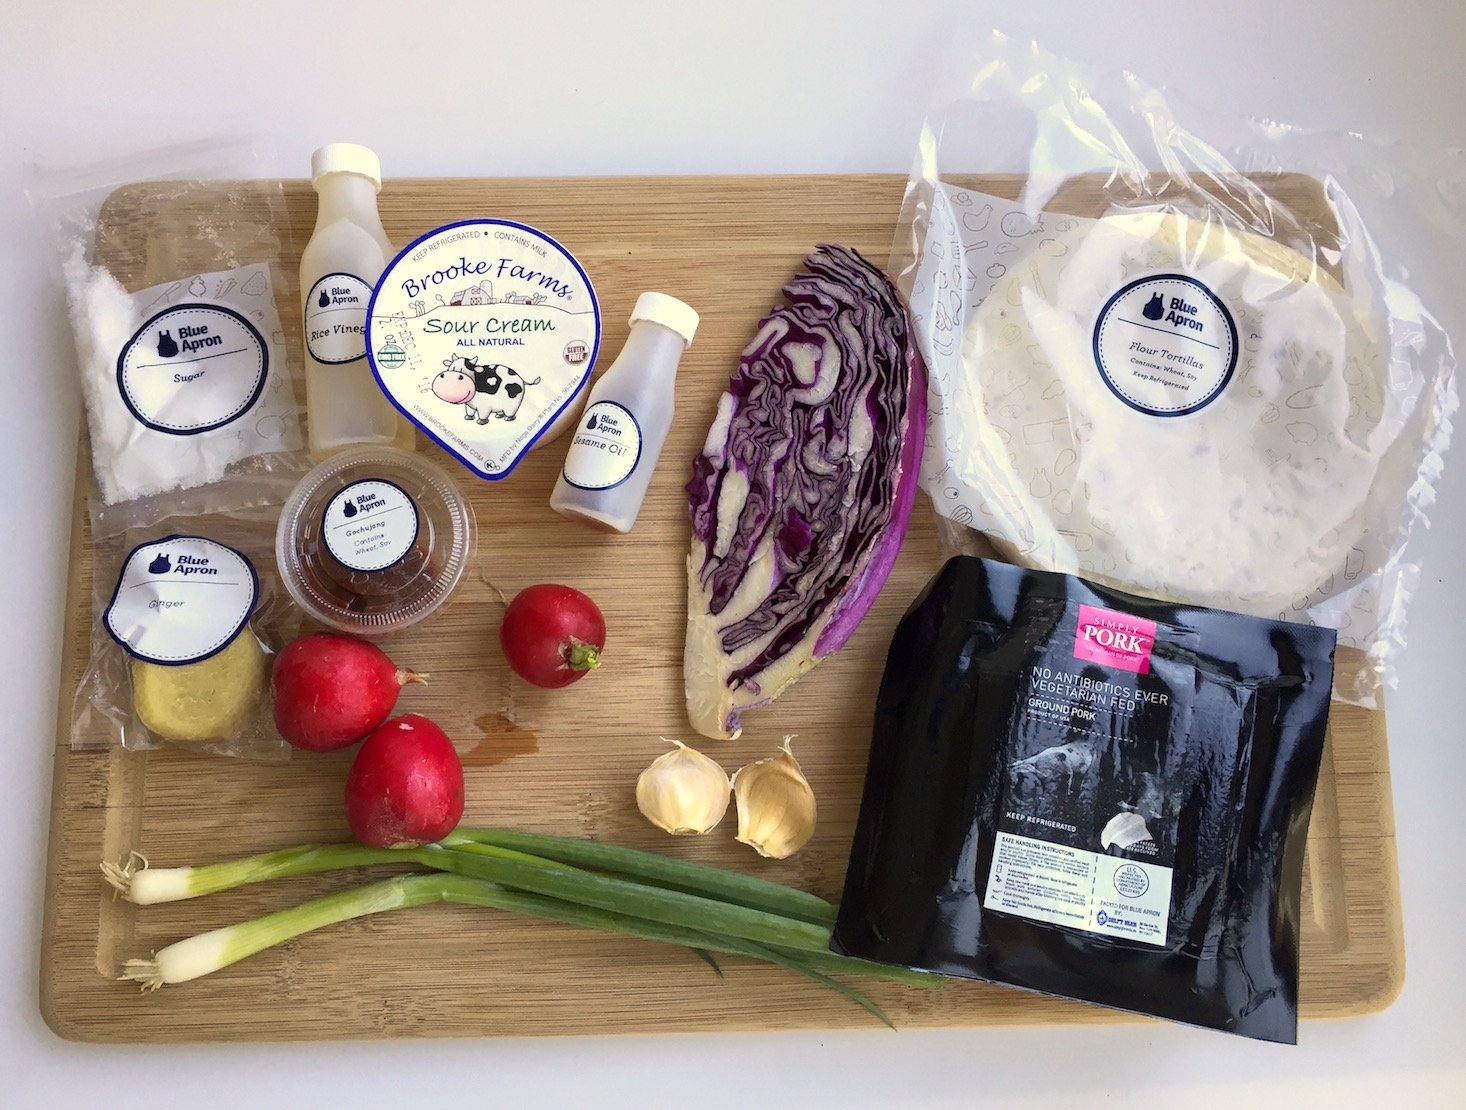 Blue apron korean tacos